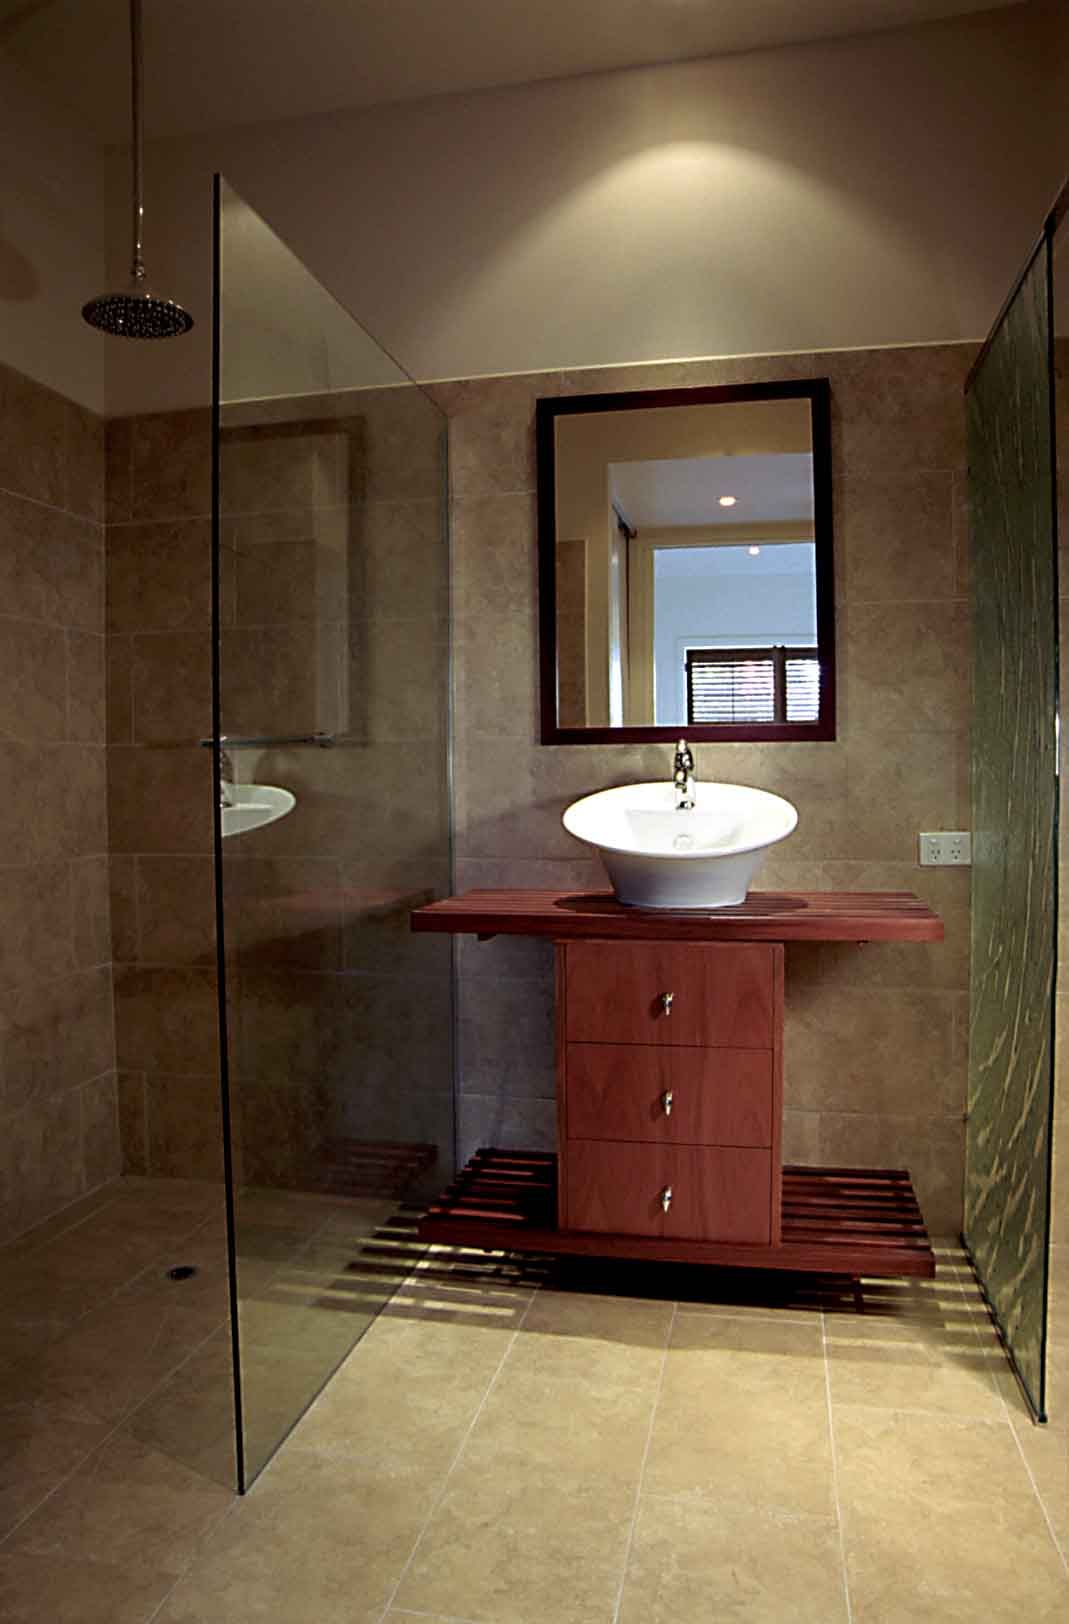 Wet room design for small bathrooms small ensuite for Small toilet room design